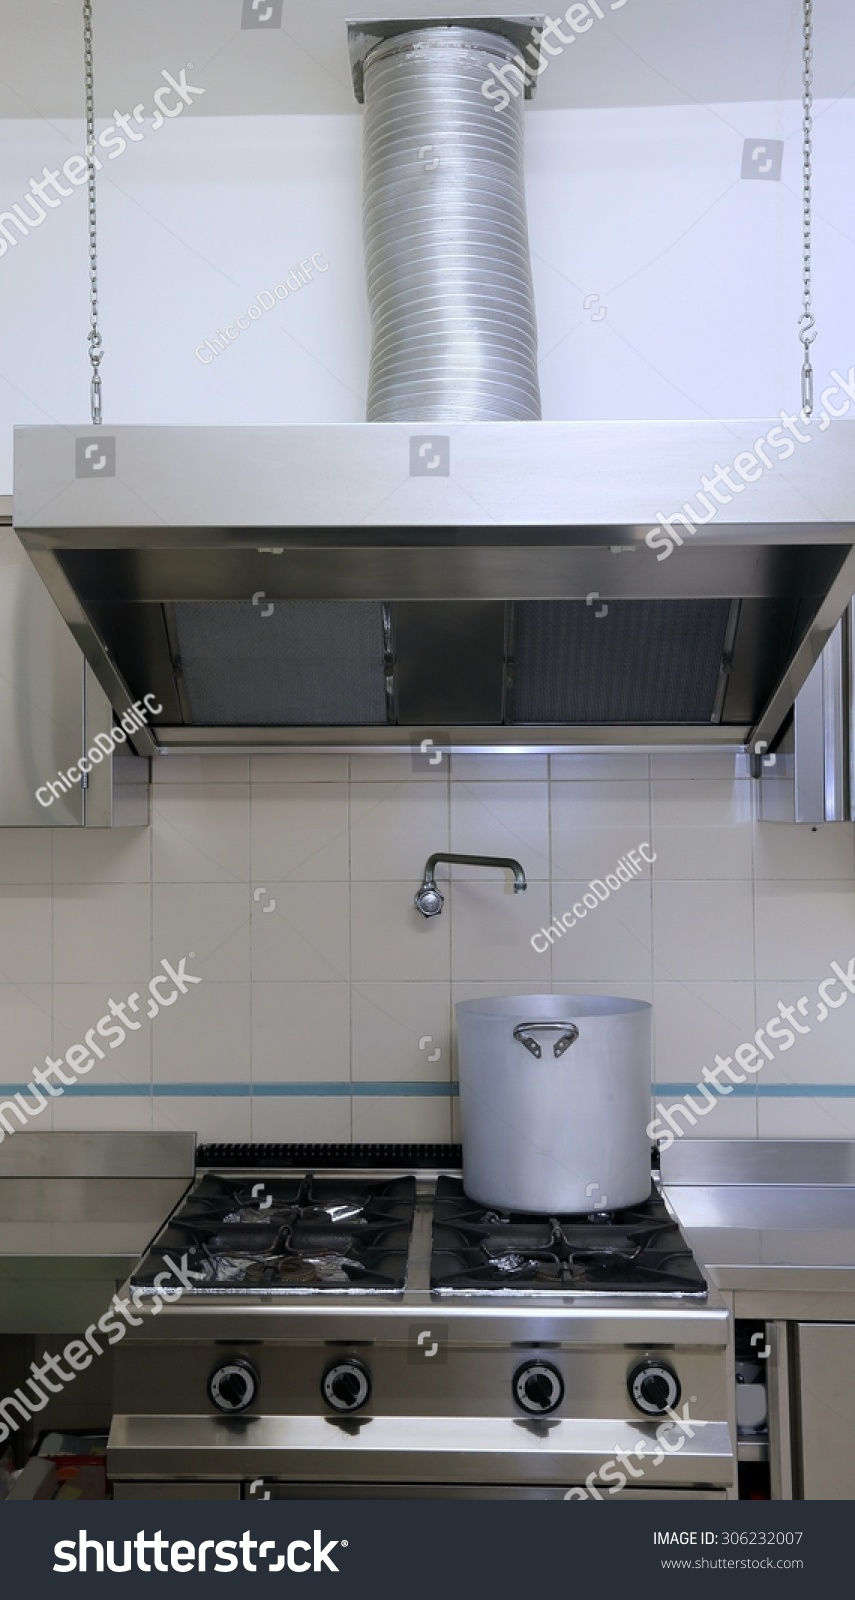 Large Industrial Kitchen Cooker With Aluminum Pot And The Giant Smoke  Ventilation Hood